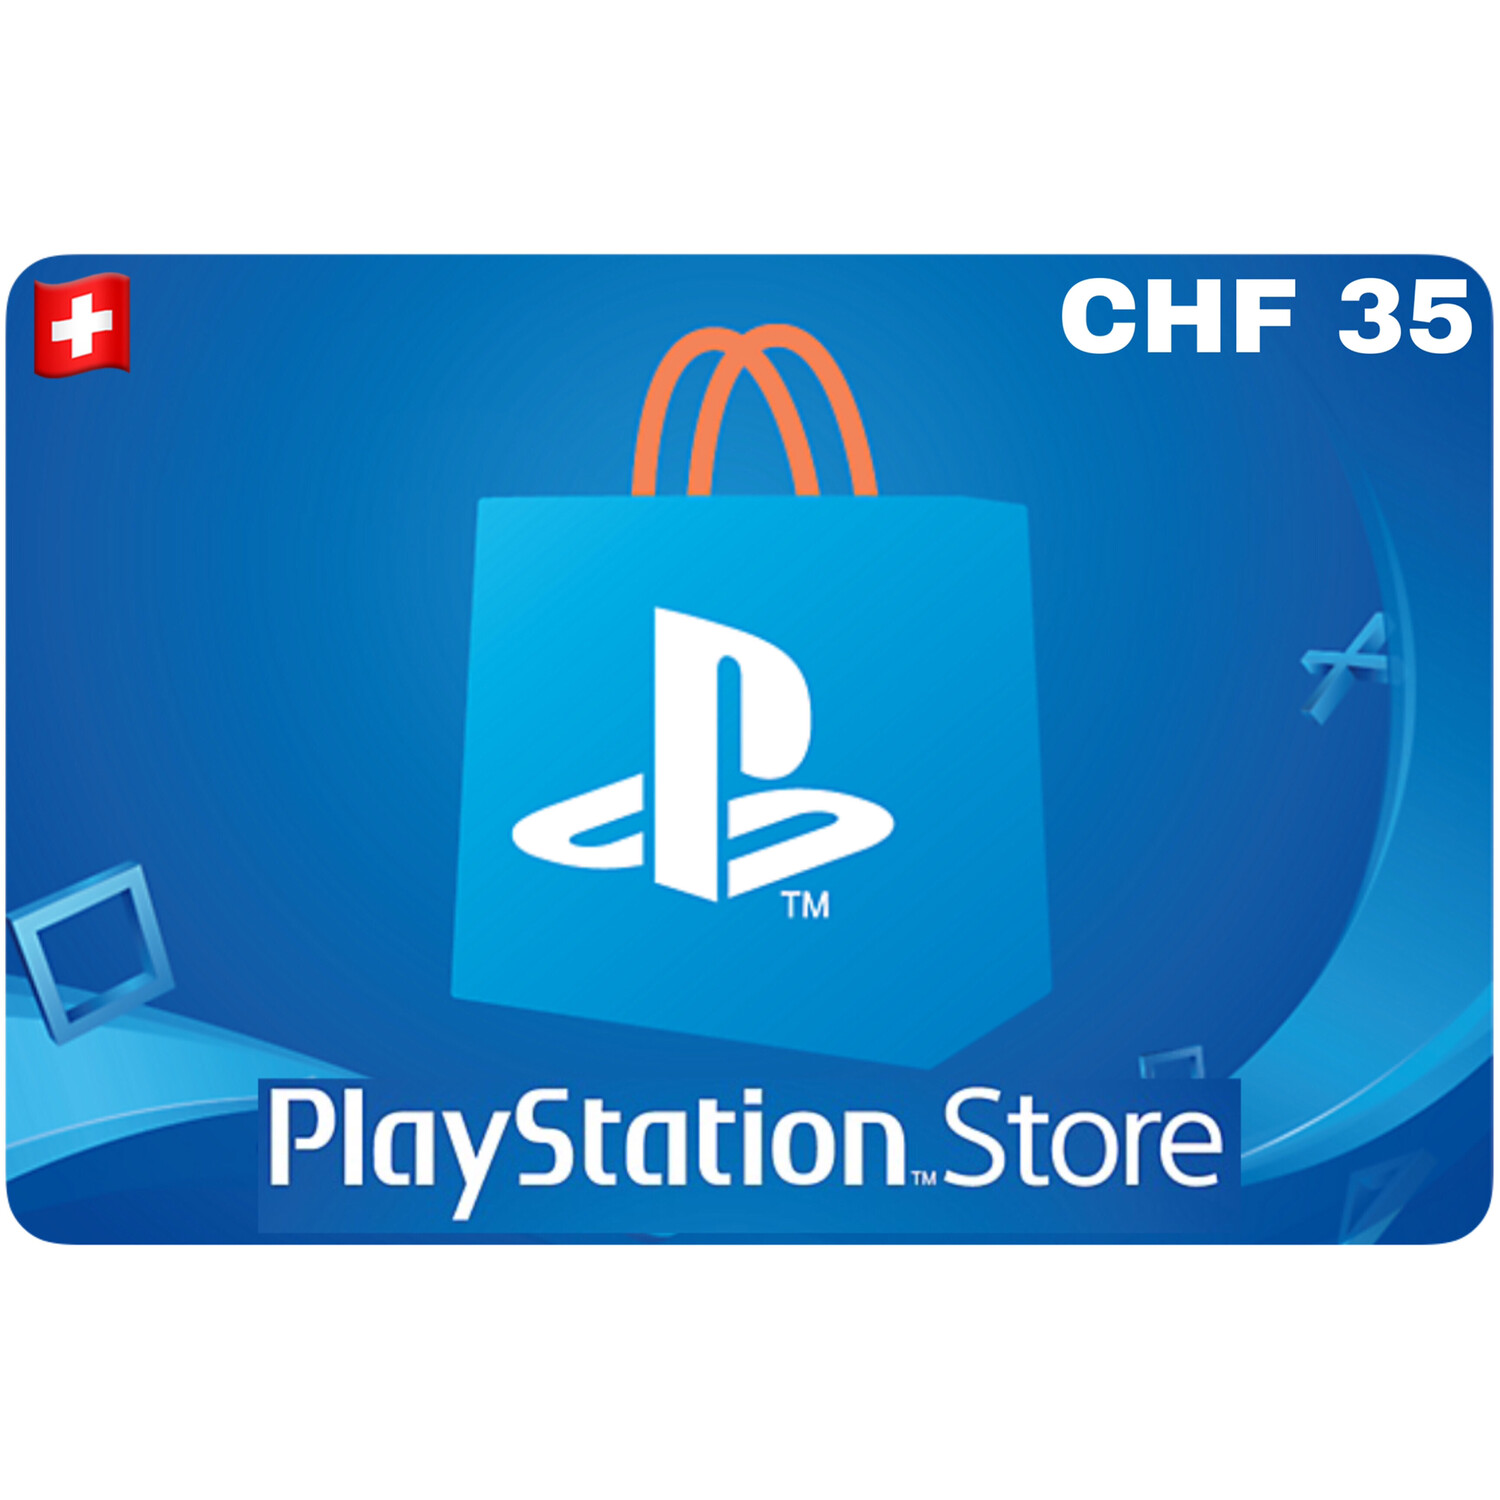 Playstation Store Gift Card Switzerland CHF 35